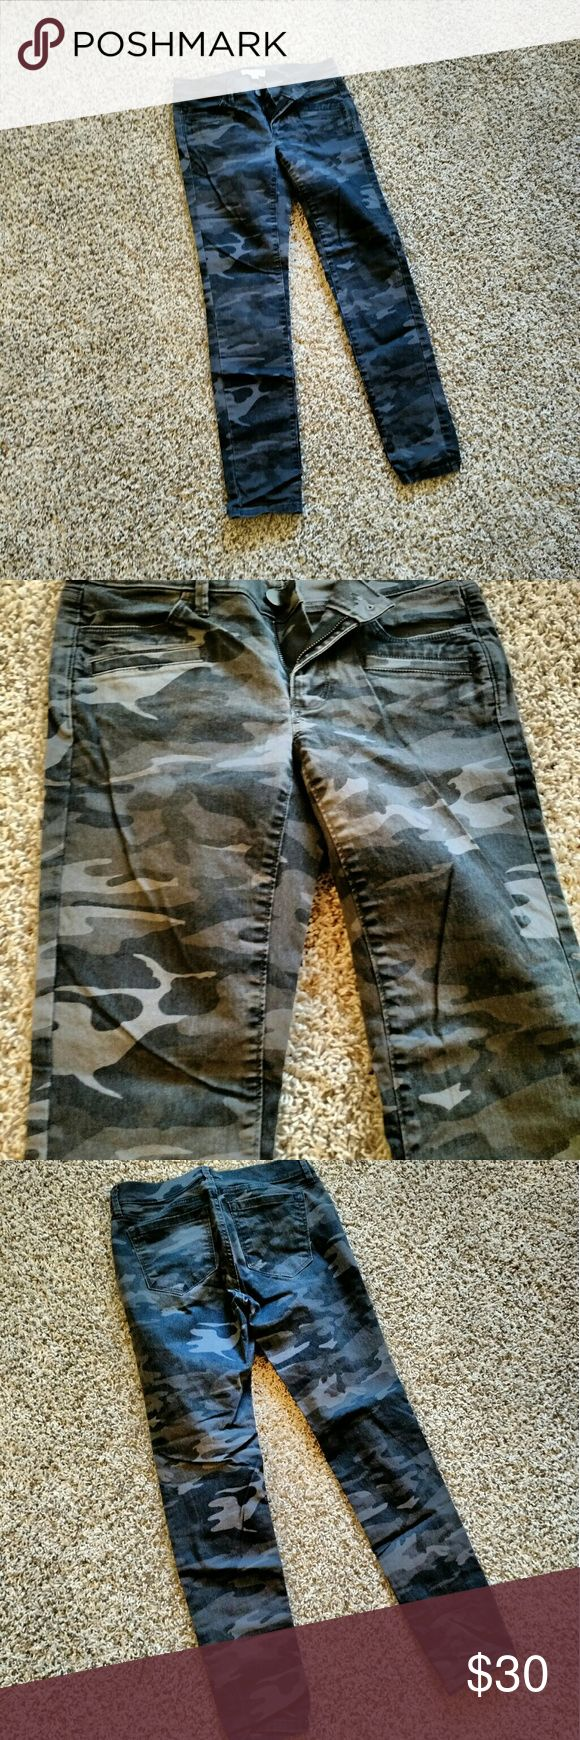 Loft Camo Skinny Pant Twill pant in a grey and black camo. Tags removed but never worn. LOFT Pants Skinny